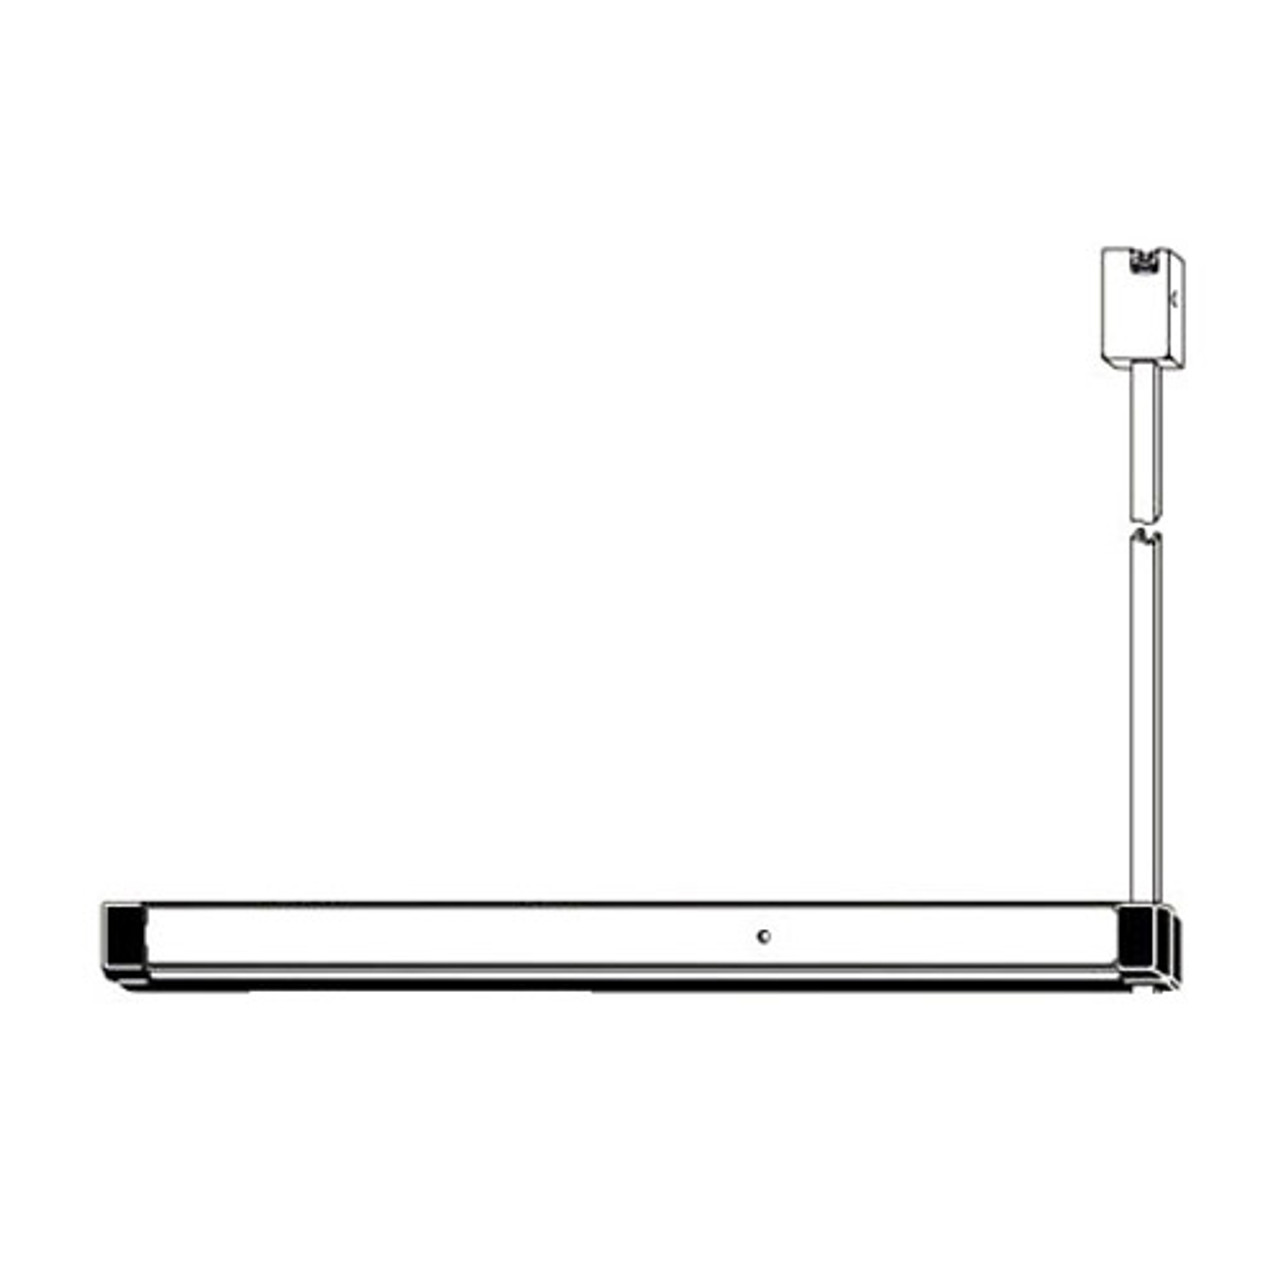 8233T-30 Adams Rite Narrow Stile Surface Vertical Rod Exit Device in Black